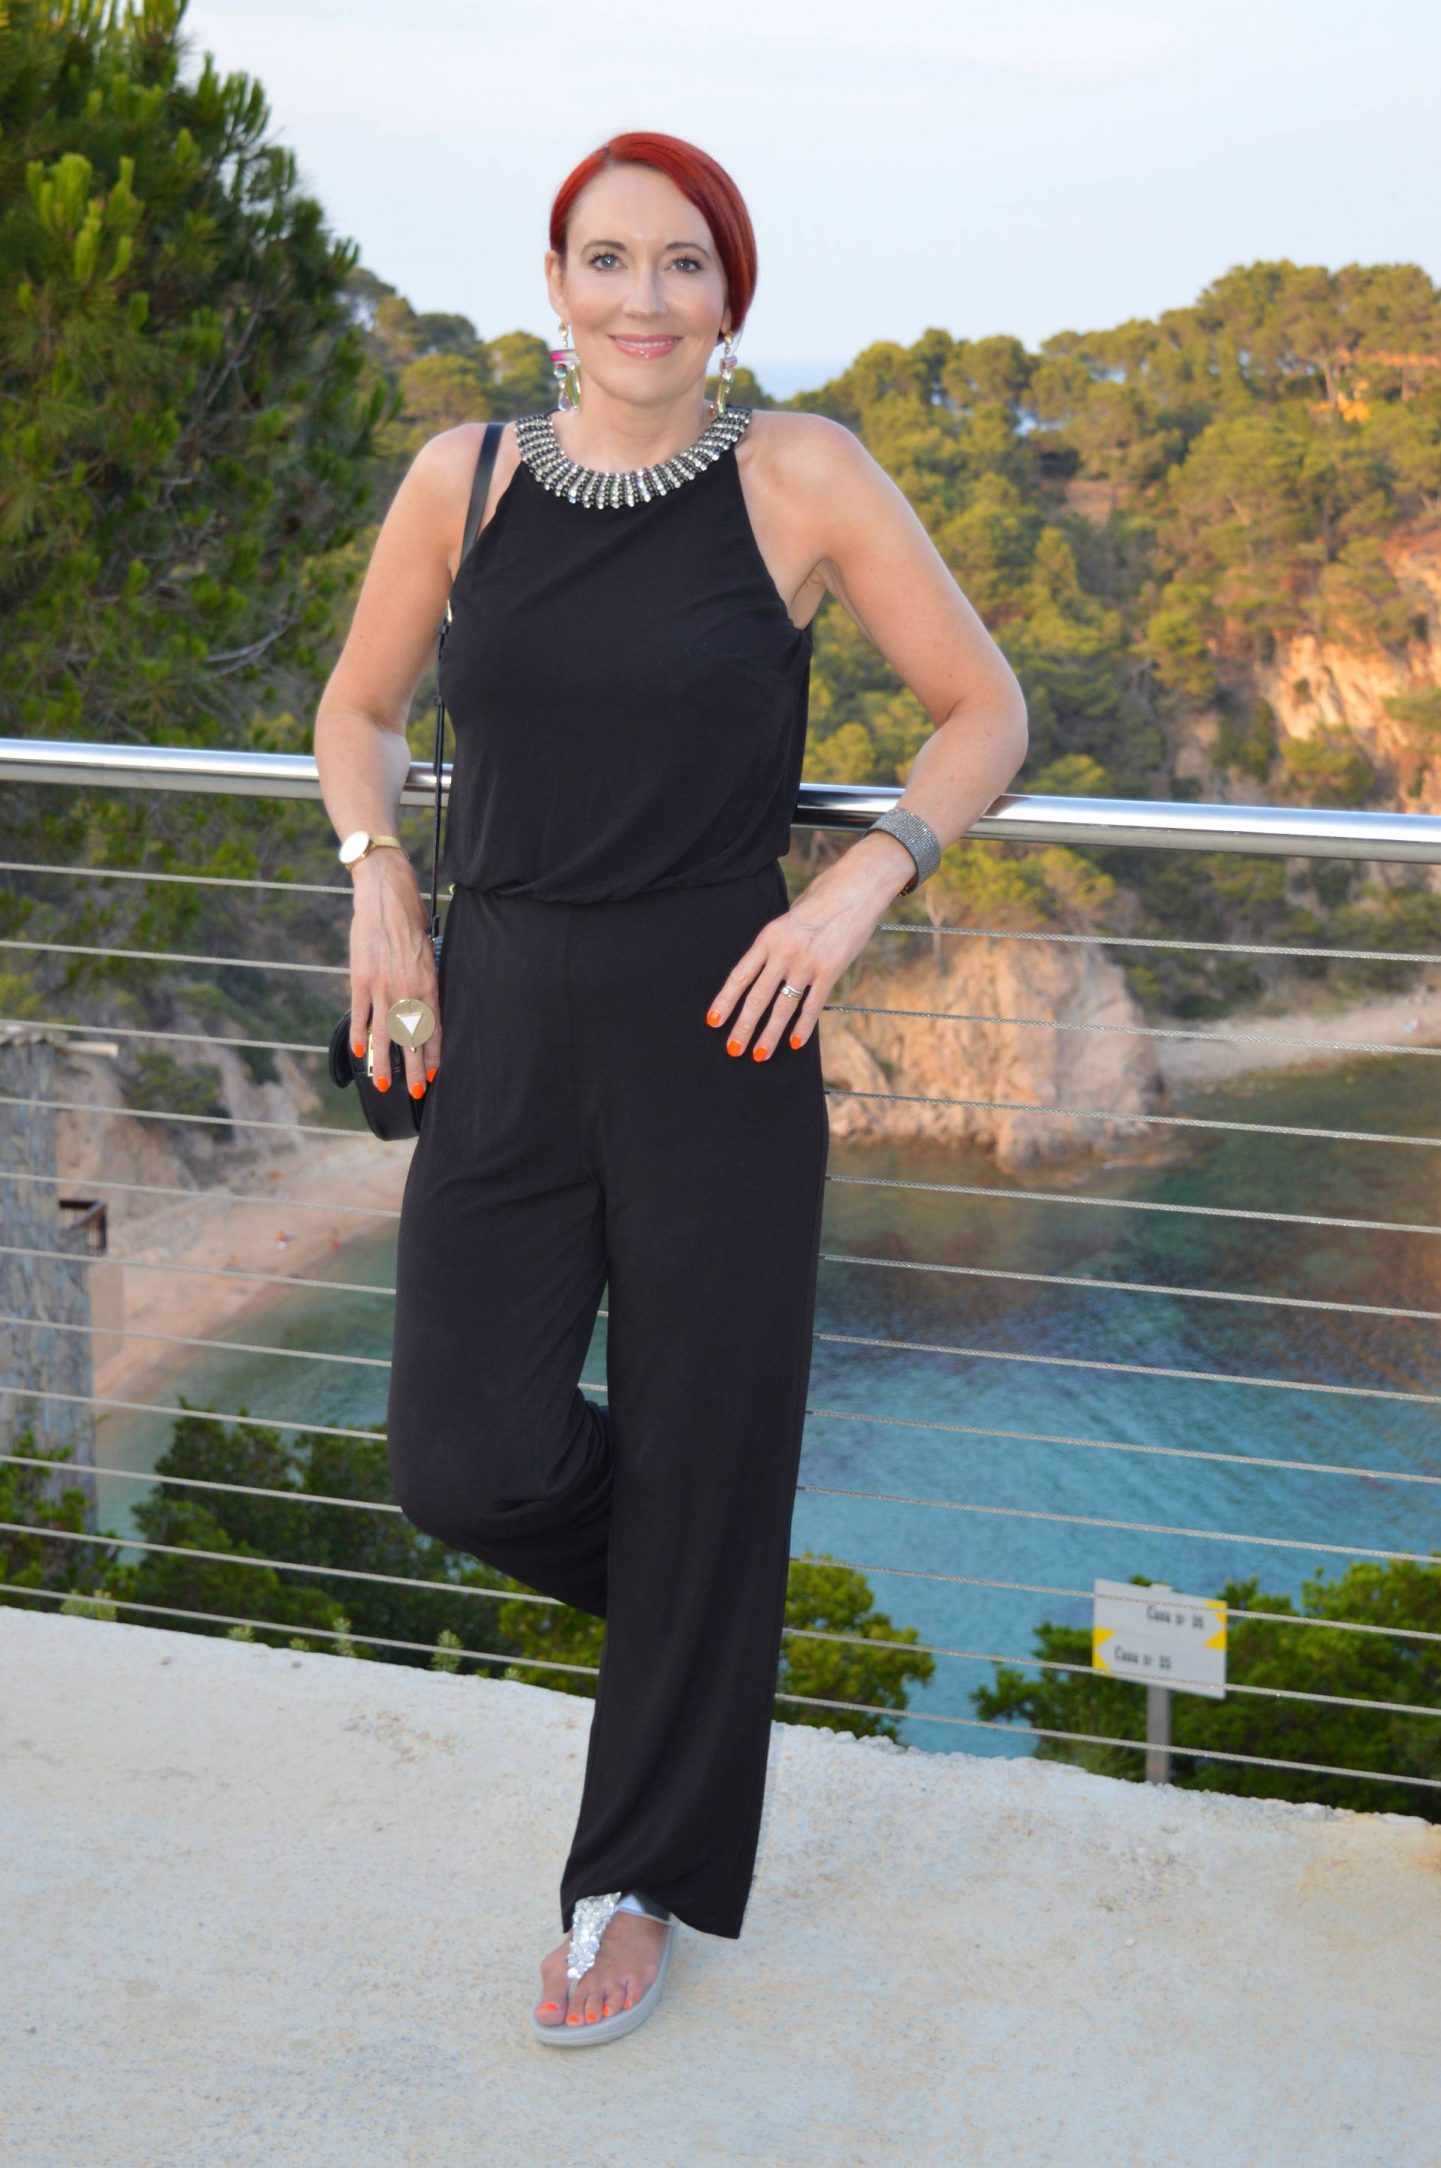 Black Issa diamante neck jumpsuit, silver embellished FitFlops